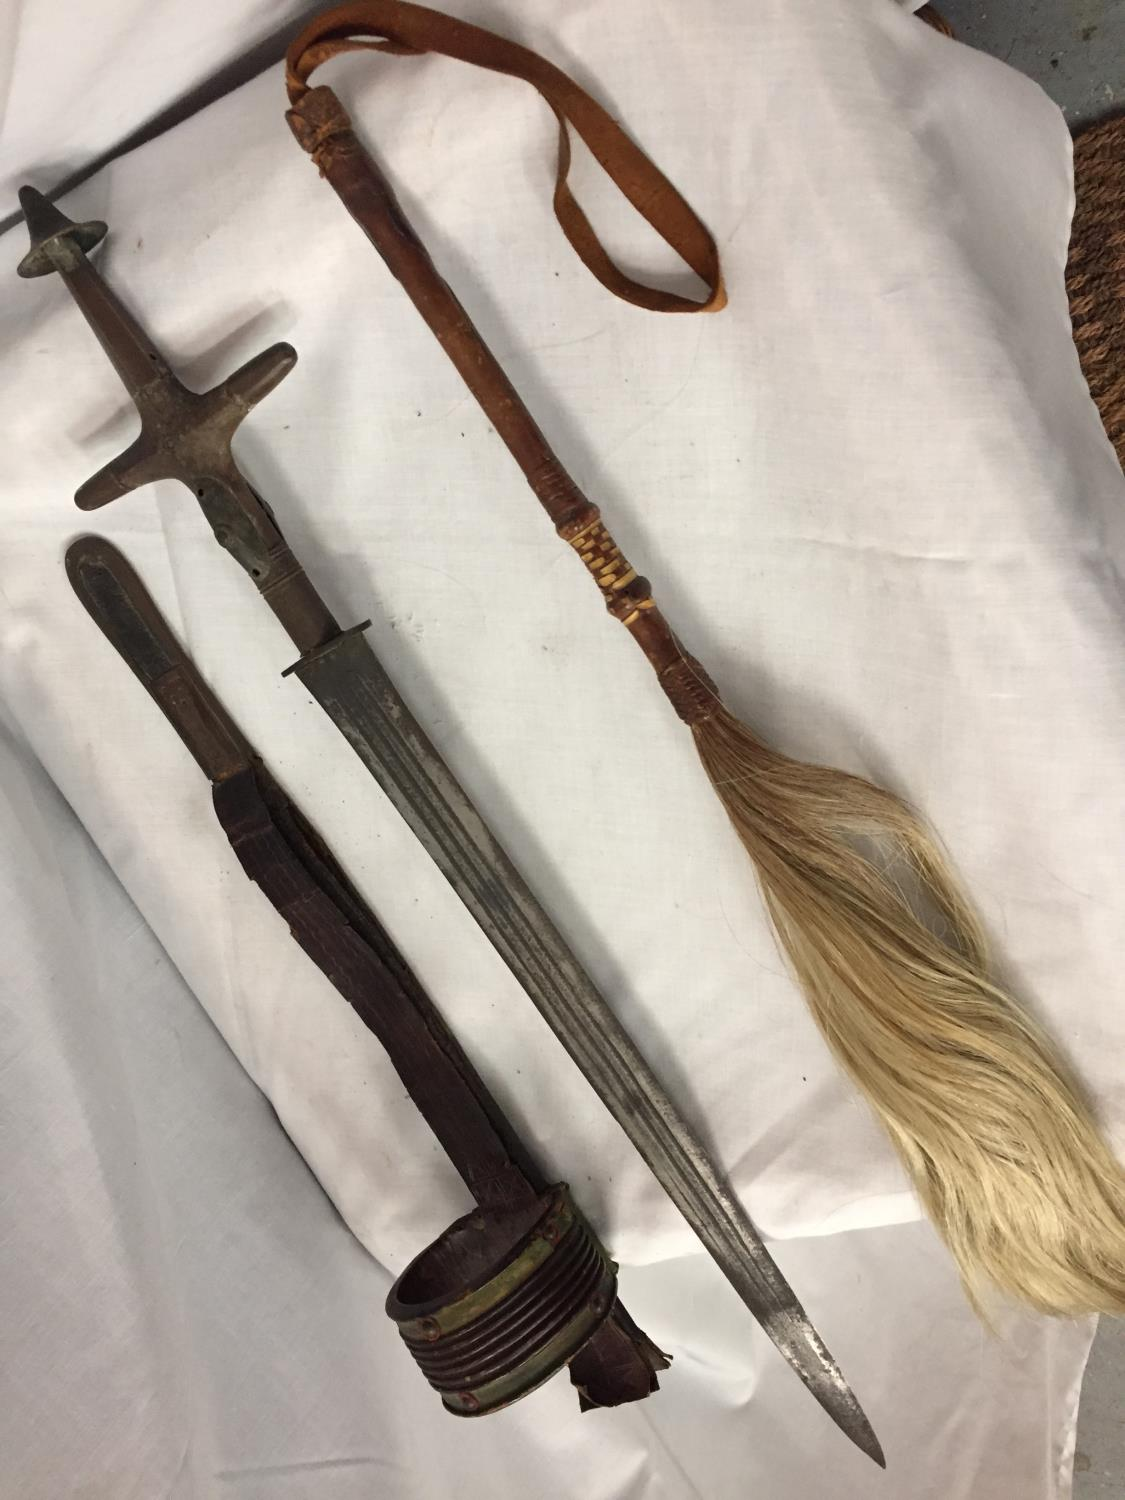 A SWORD IN A LEATHER SHEATH AND A VINTAGE LEATHER HORSE HAIR RIDING CROP - Image 6 of 7